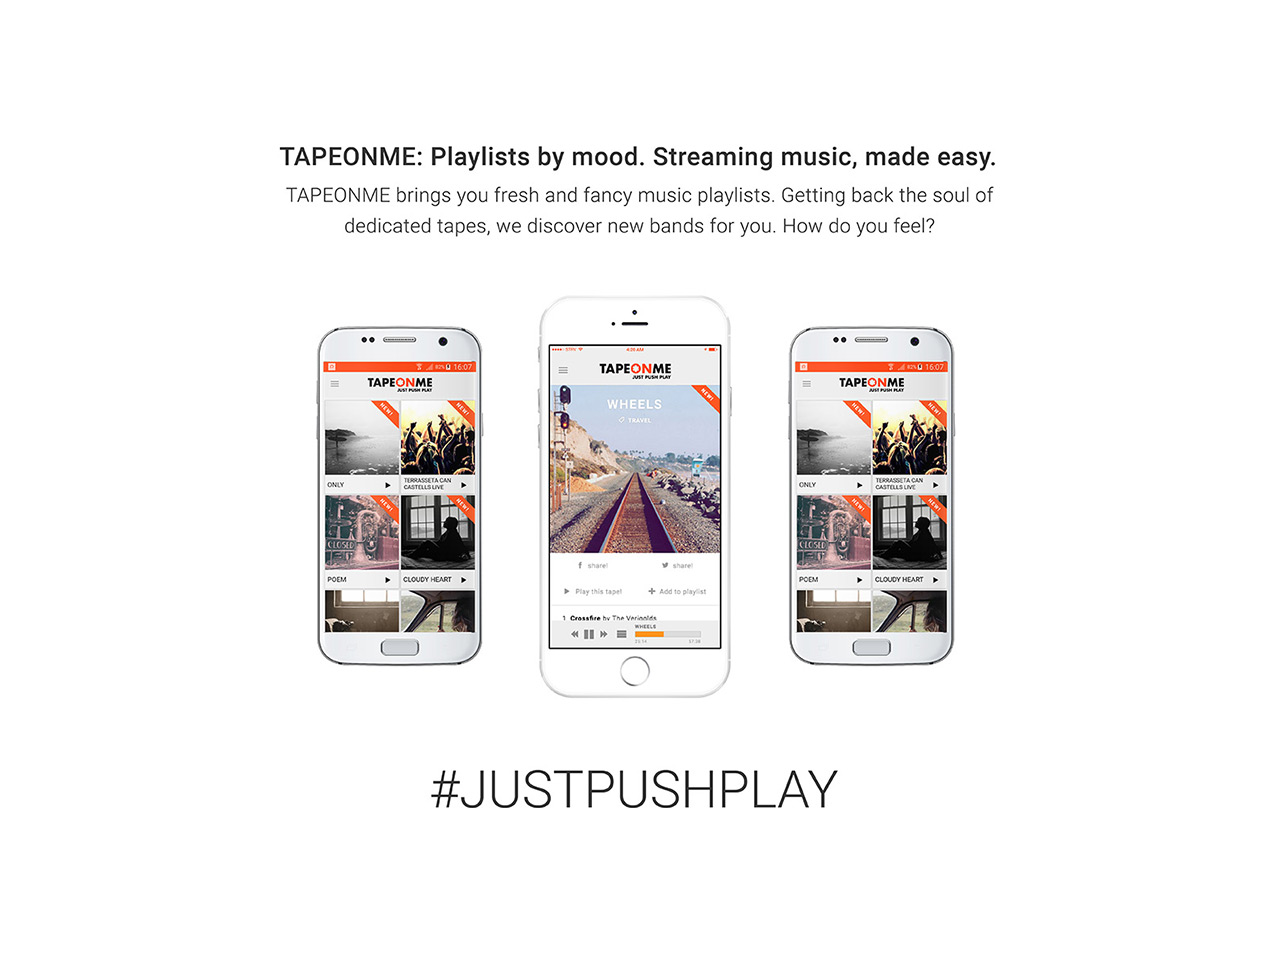 TapeOnMe: Playlists by mood. Streaming music, made easy.